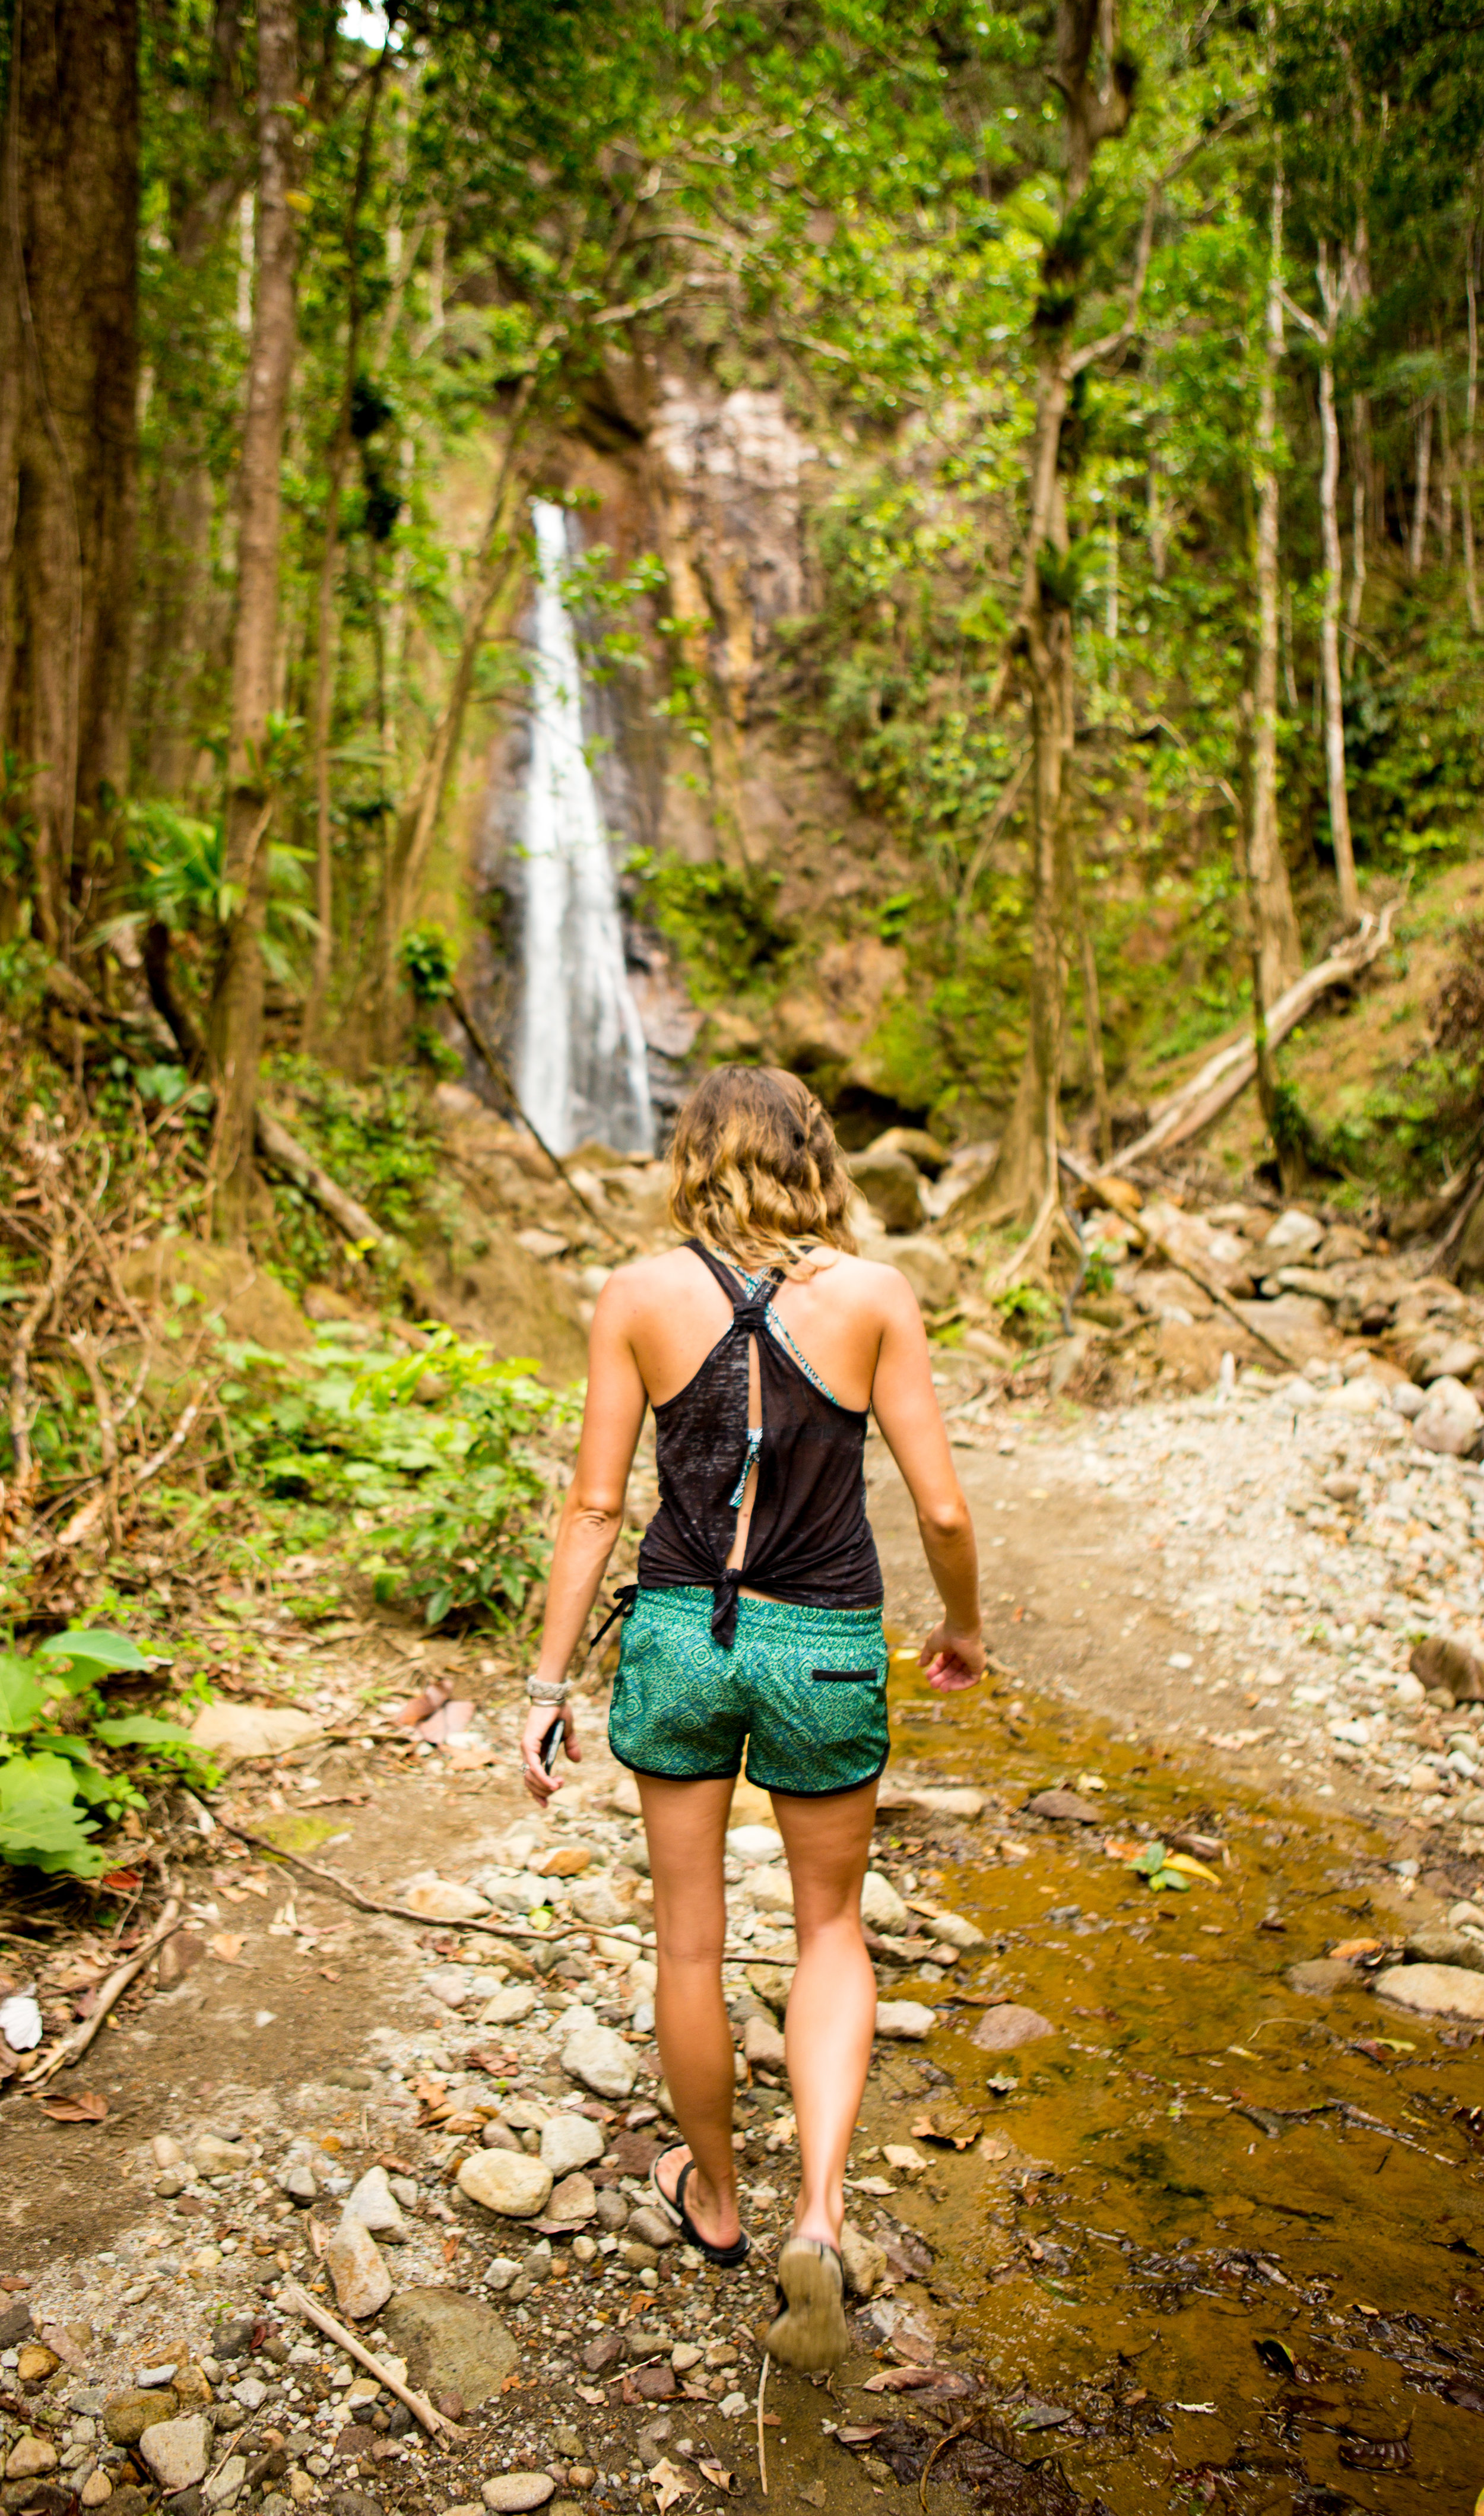 Before you get out to the actual Syndicate Waterfall, you've got to TAKE A TAXI 2.5 MILES INTO A RAINFOREST. That's half of the fun!